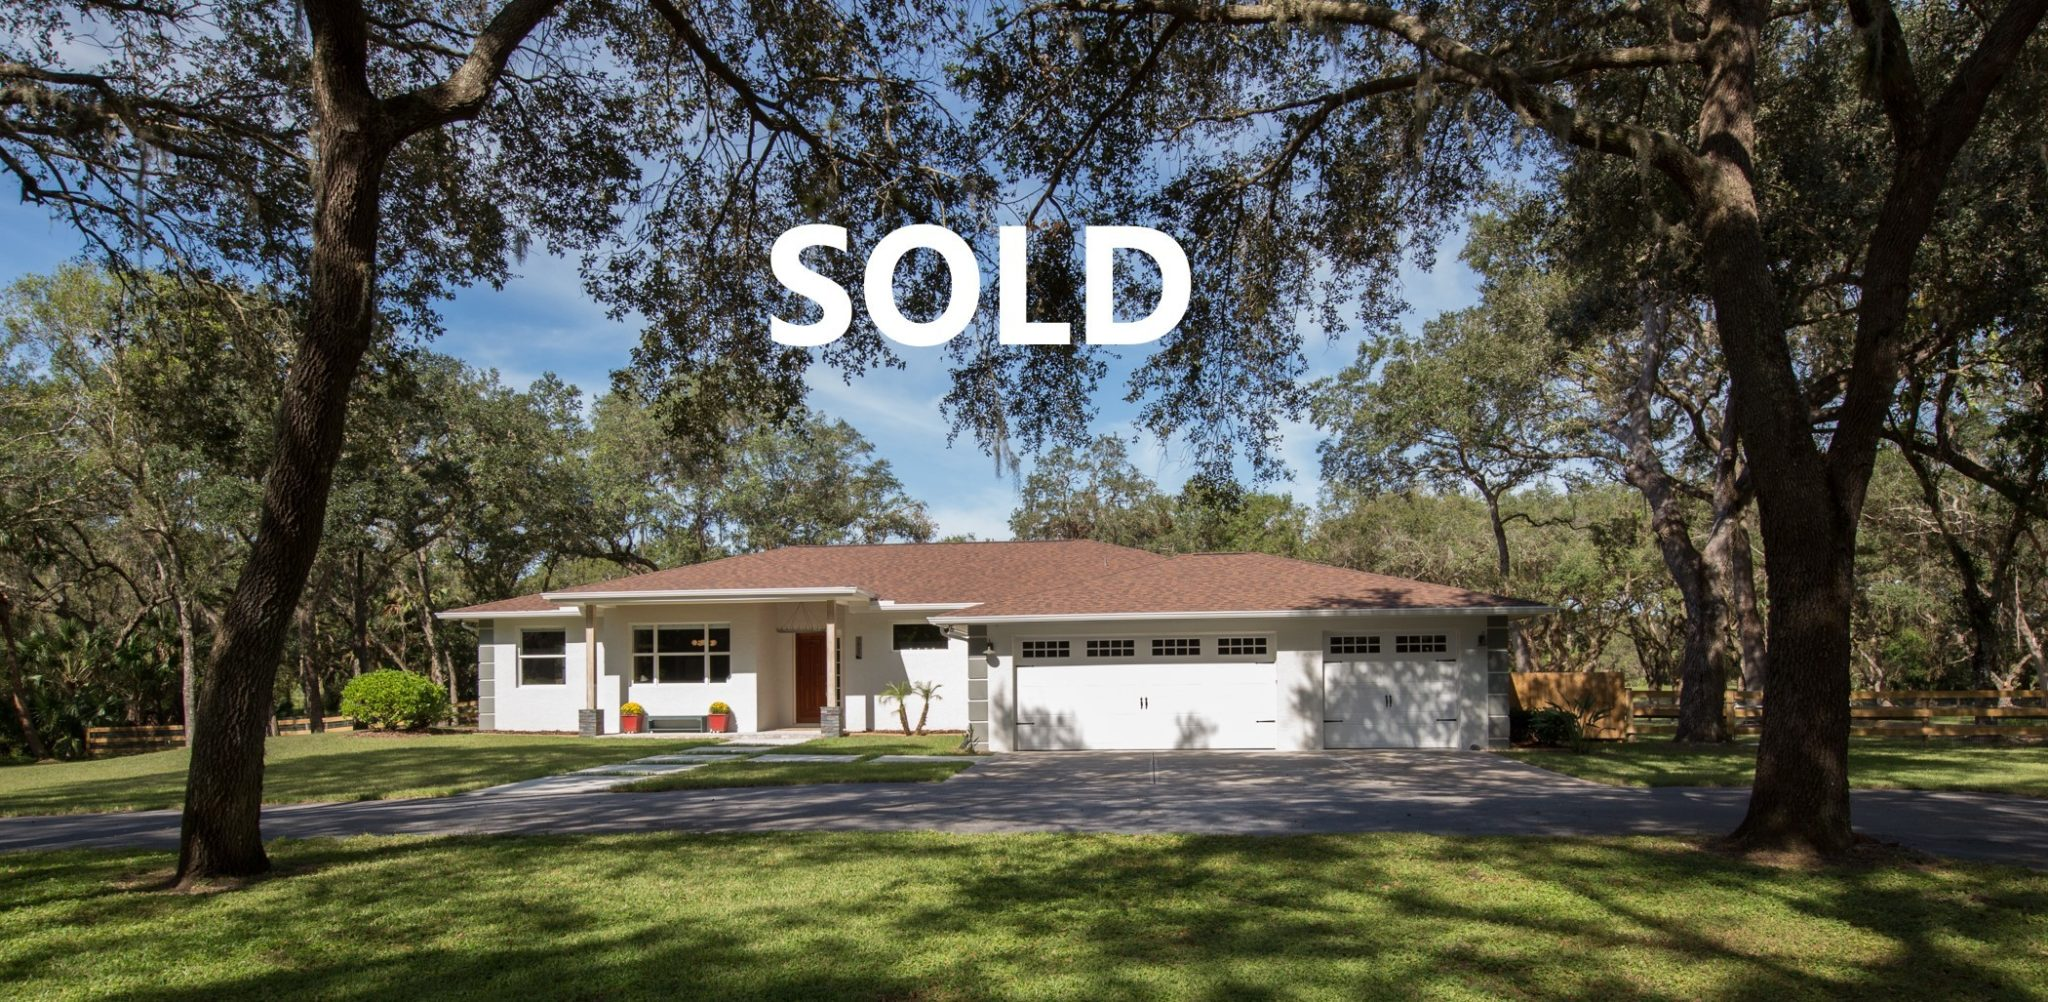 Just Sold / Saddle Creek / Sarasota Equestrian Property